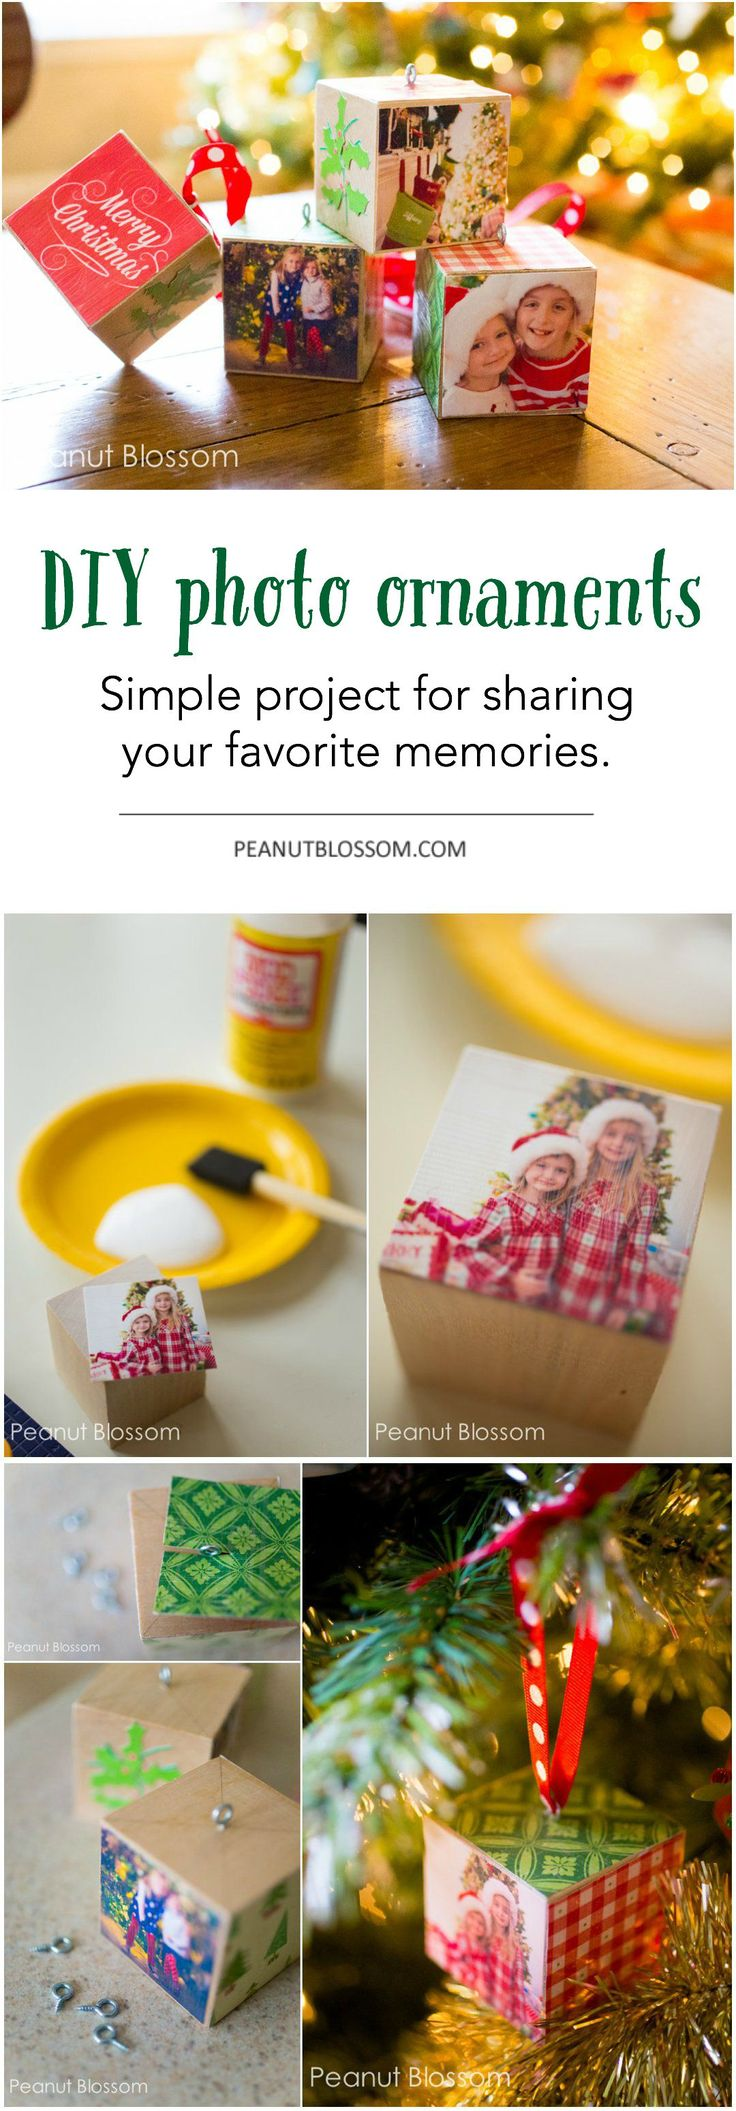 DIY photo ornaments craft for Christmas. This adorable holiday project is easy to make on your own or with the kids and is a huge hit with grandparents. I want a set for MY tree!!